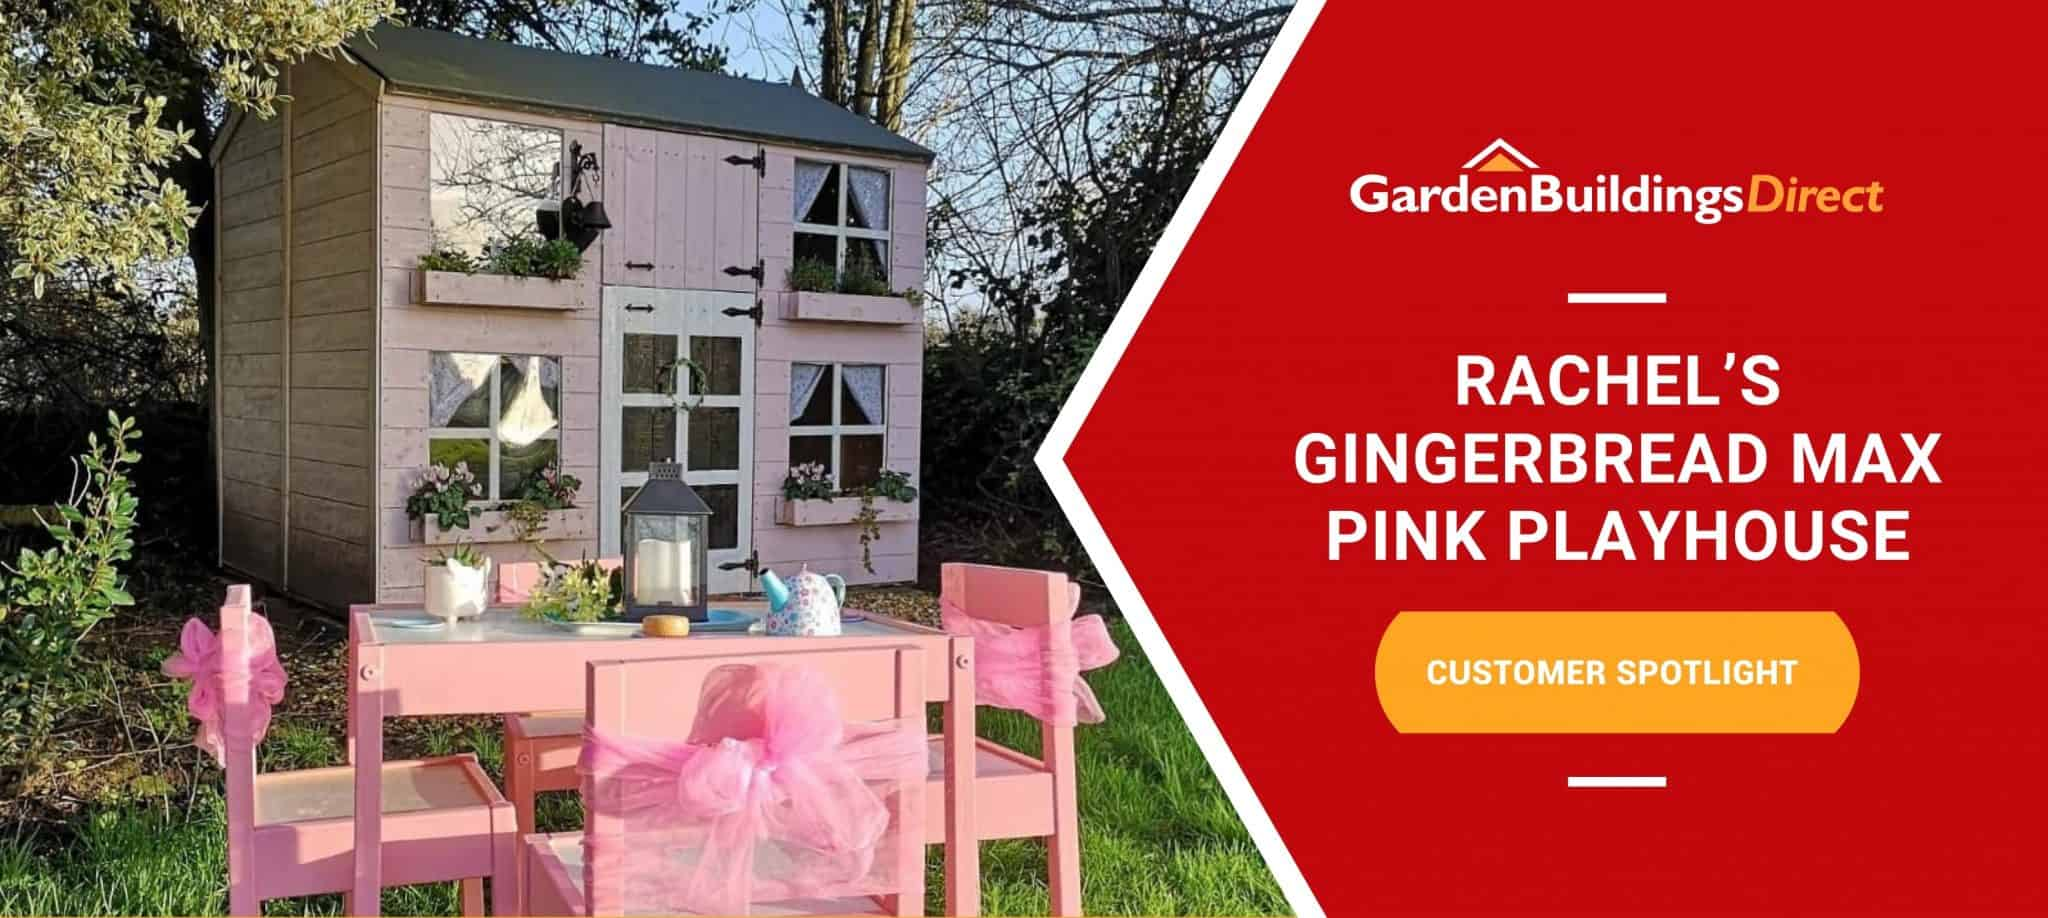 BillyOh Gingerbread Max two-storey playhouse painted pink behind pink children's chairs and table